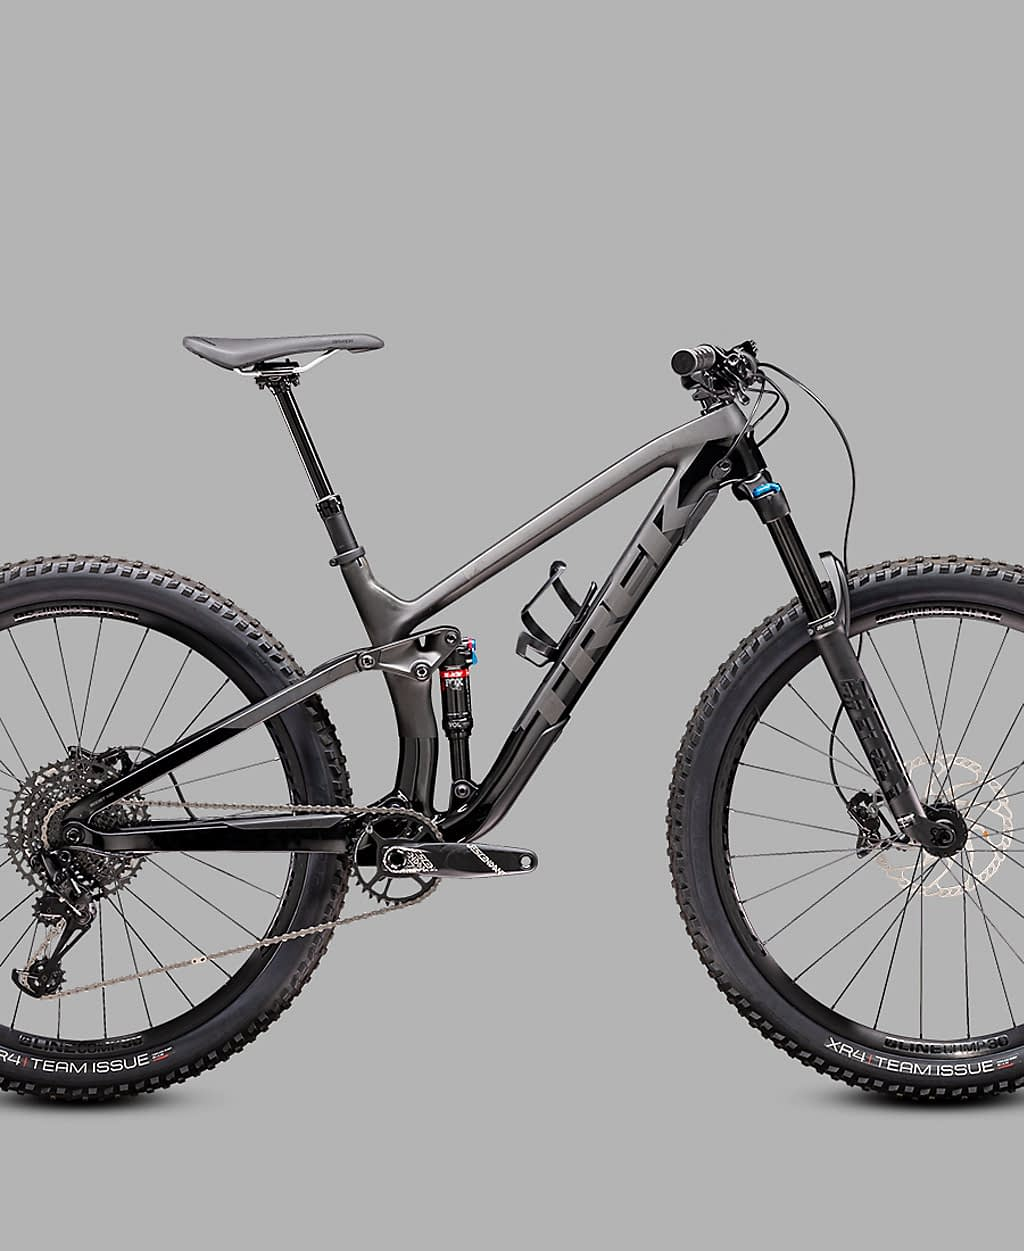 a black and grey full suspension bicycle